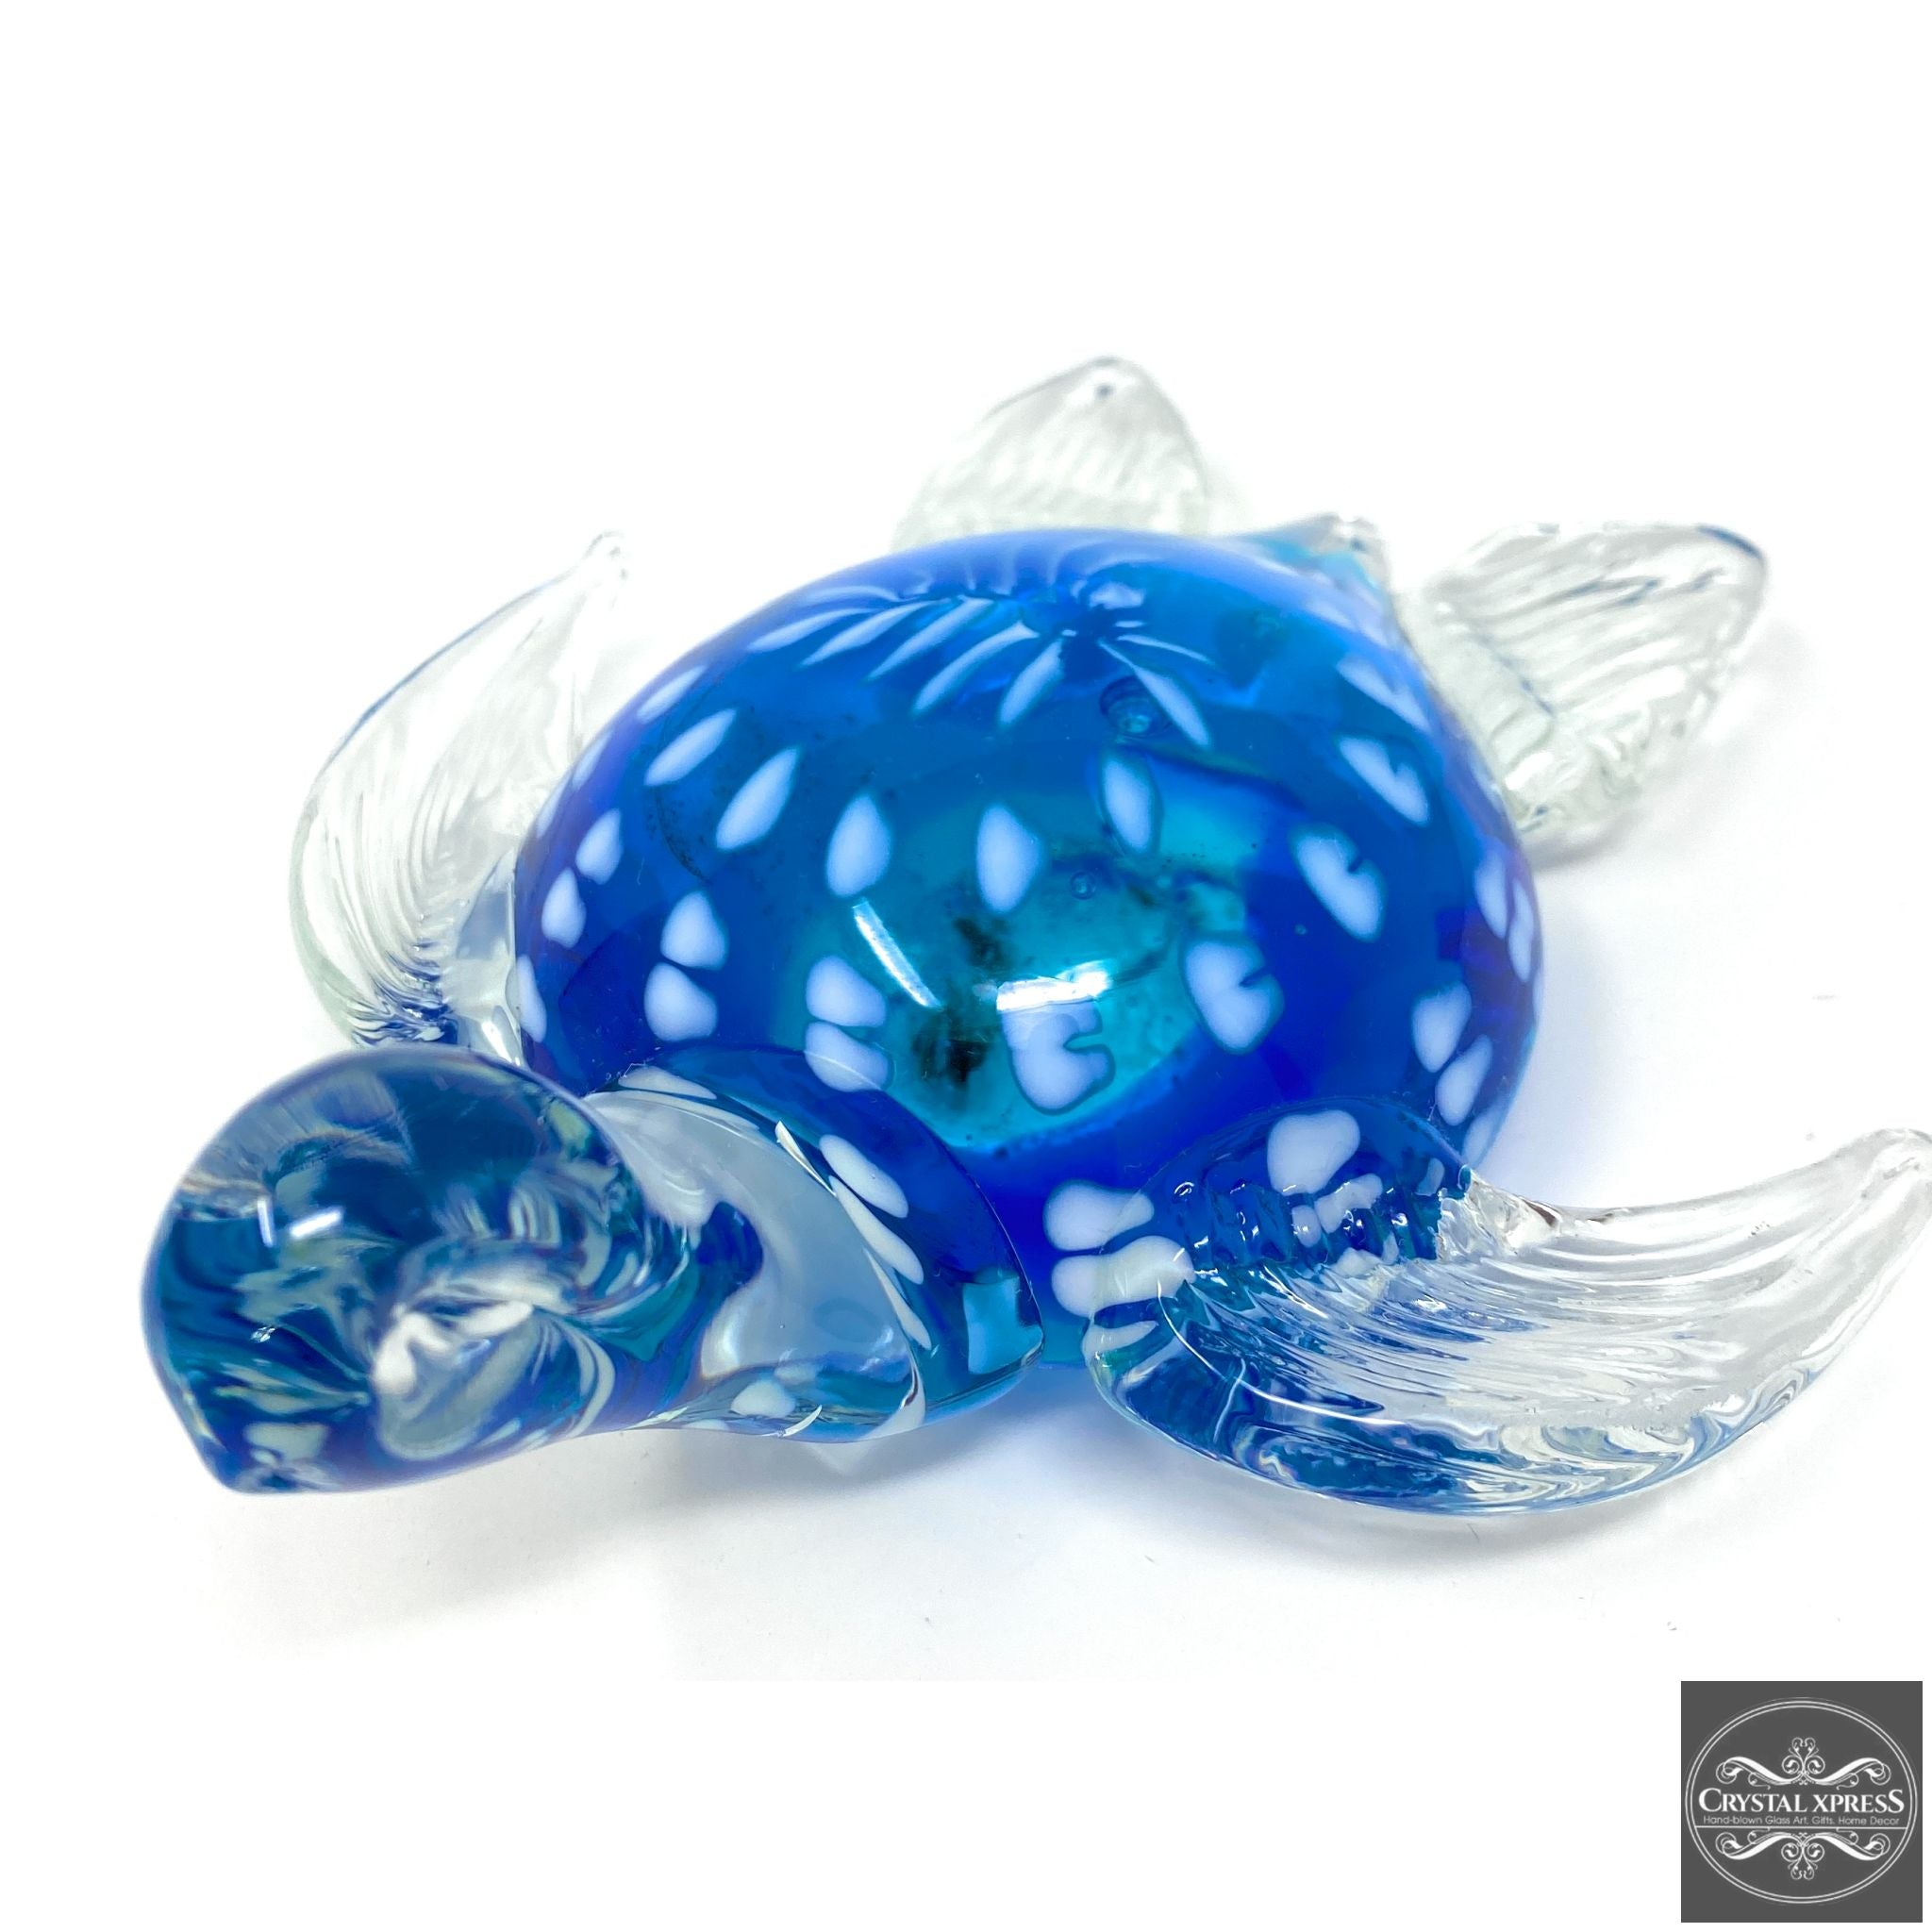 "New 7"" Hand Blown Glass Blue with White Dots Turtle Sculpture Figurine"